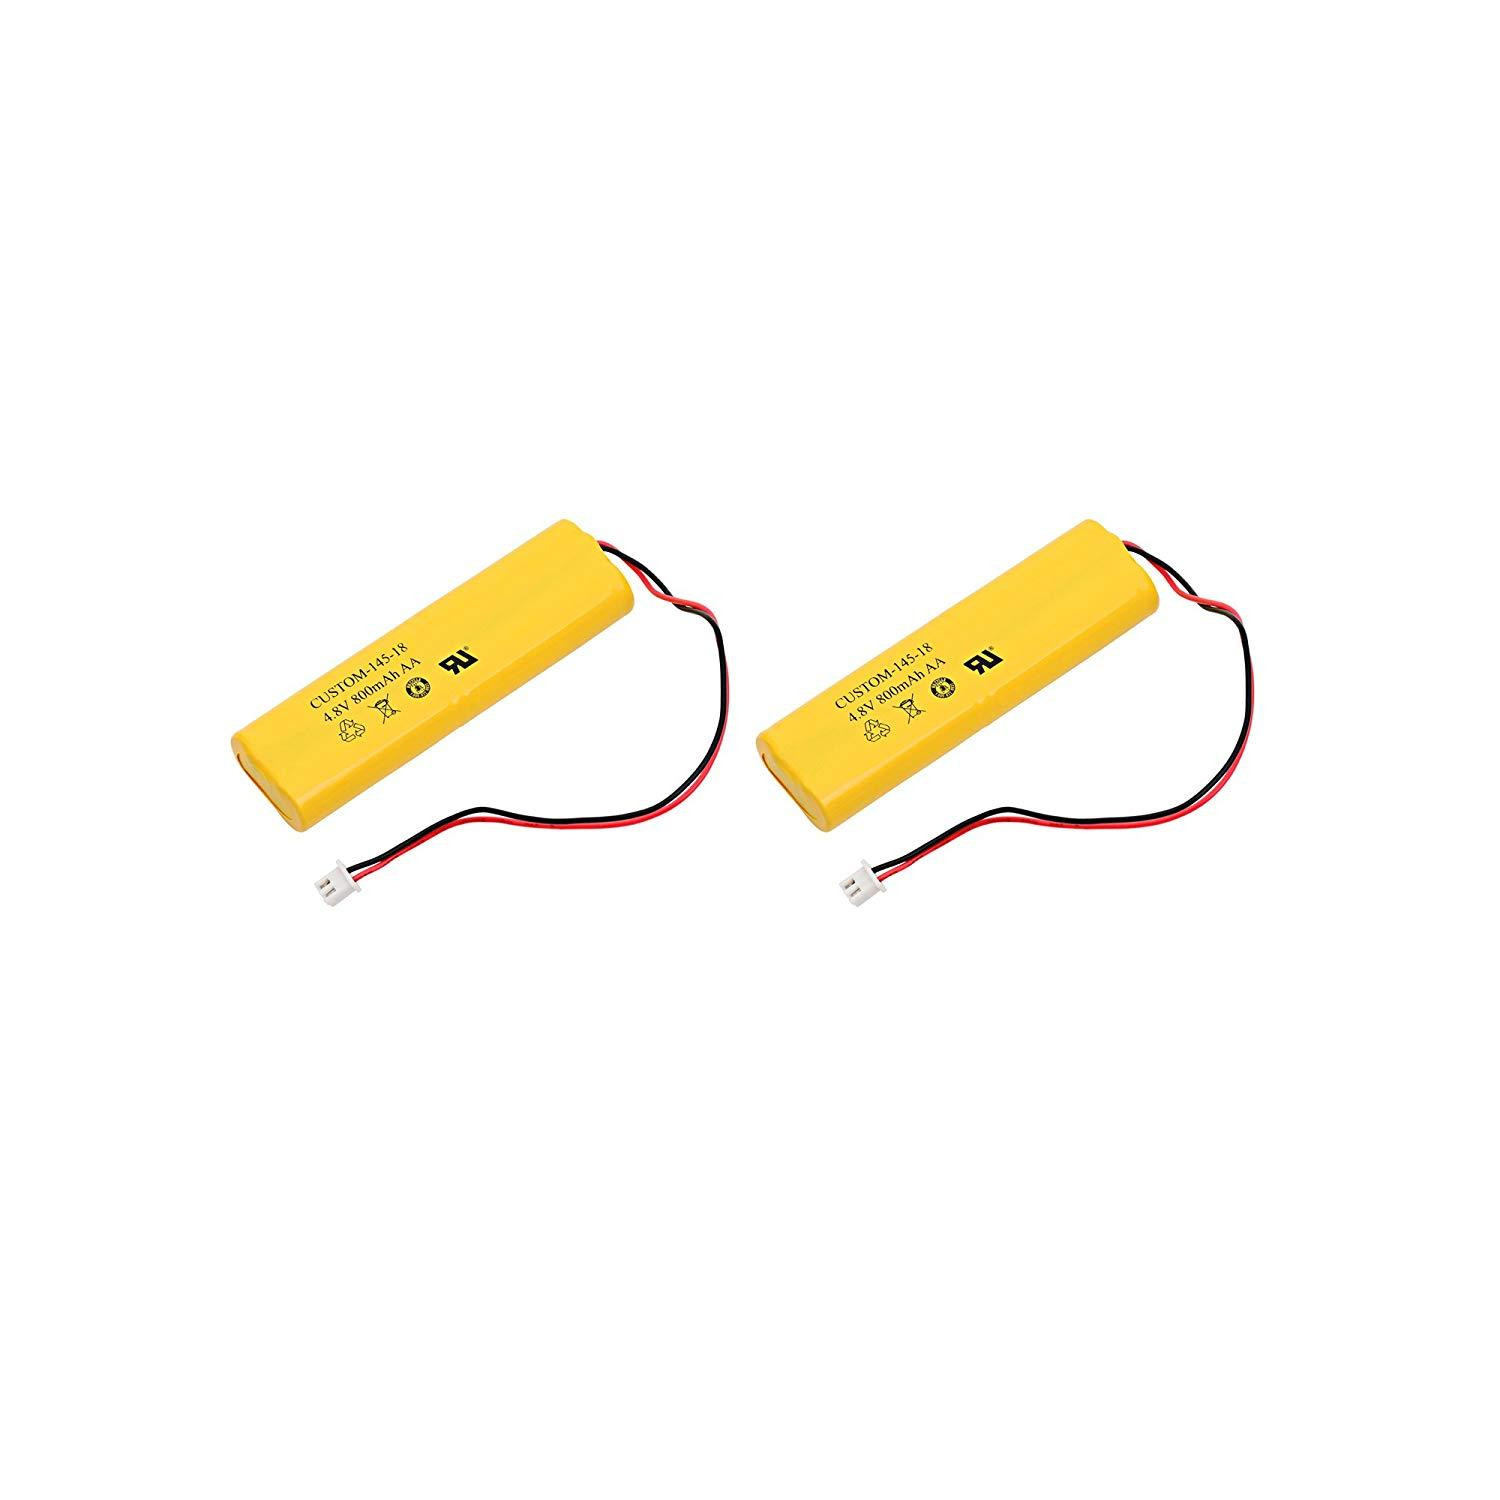 2pc Dantona Replacement Emergency Light Battery For BYD D-AA650B-4, Exell EBE-145-18 and more